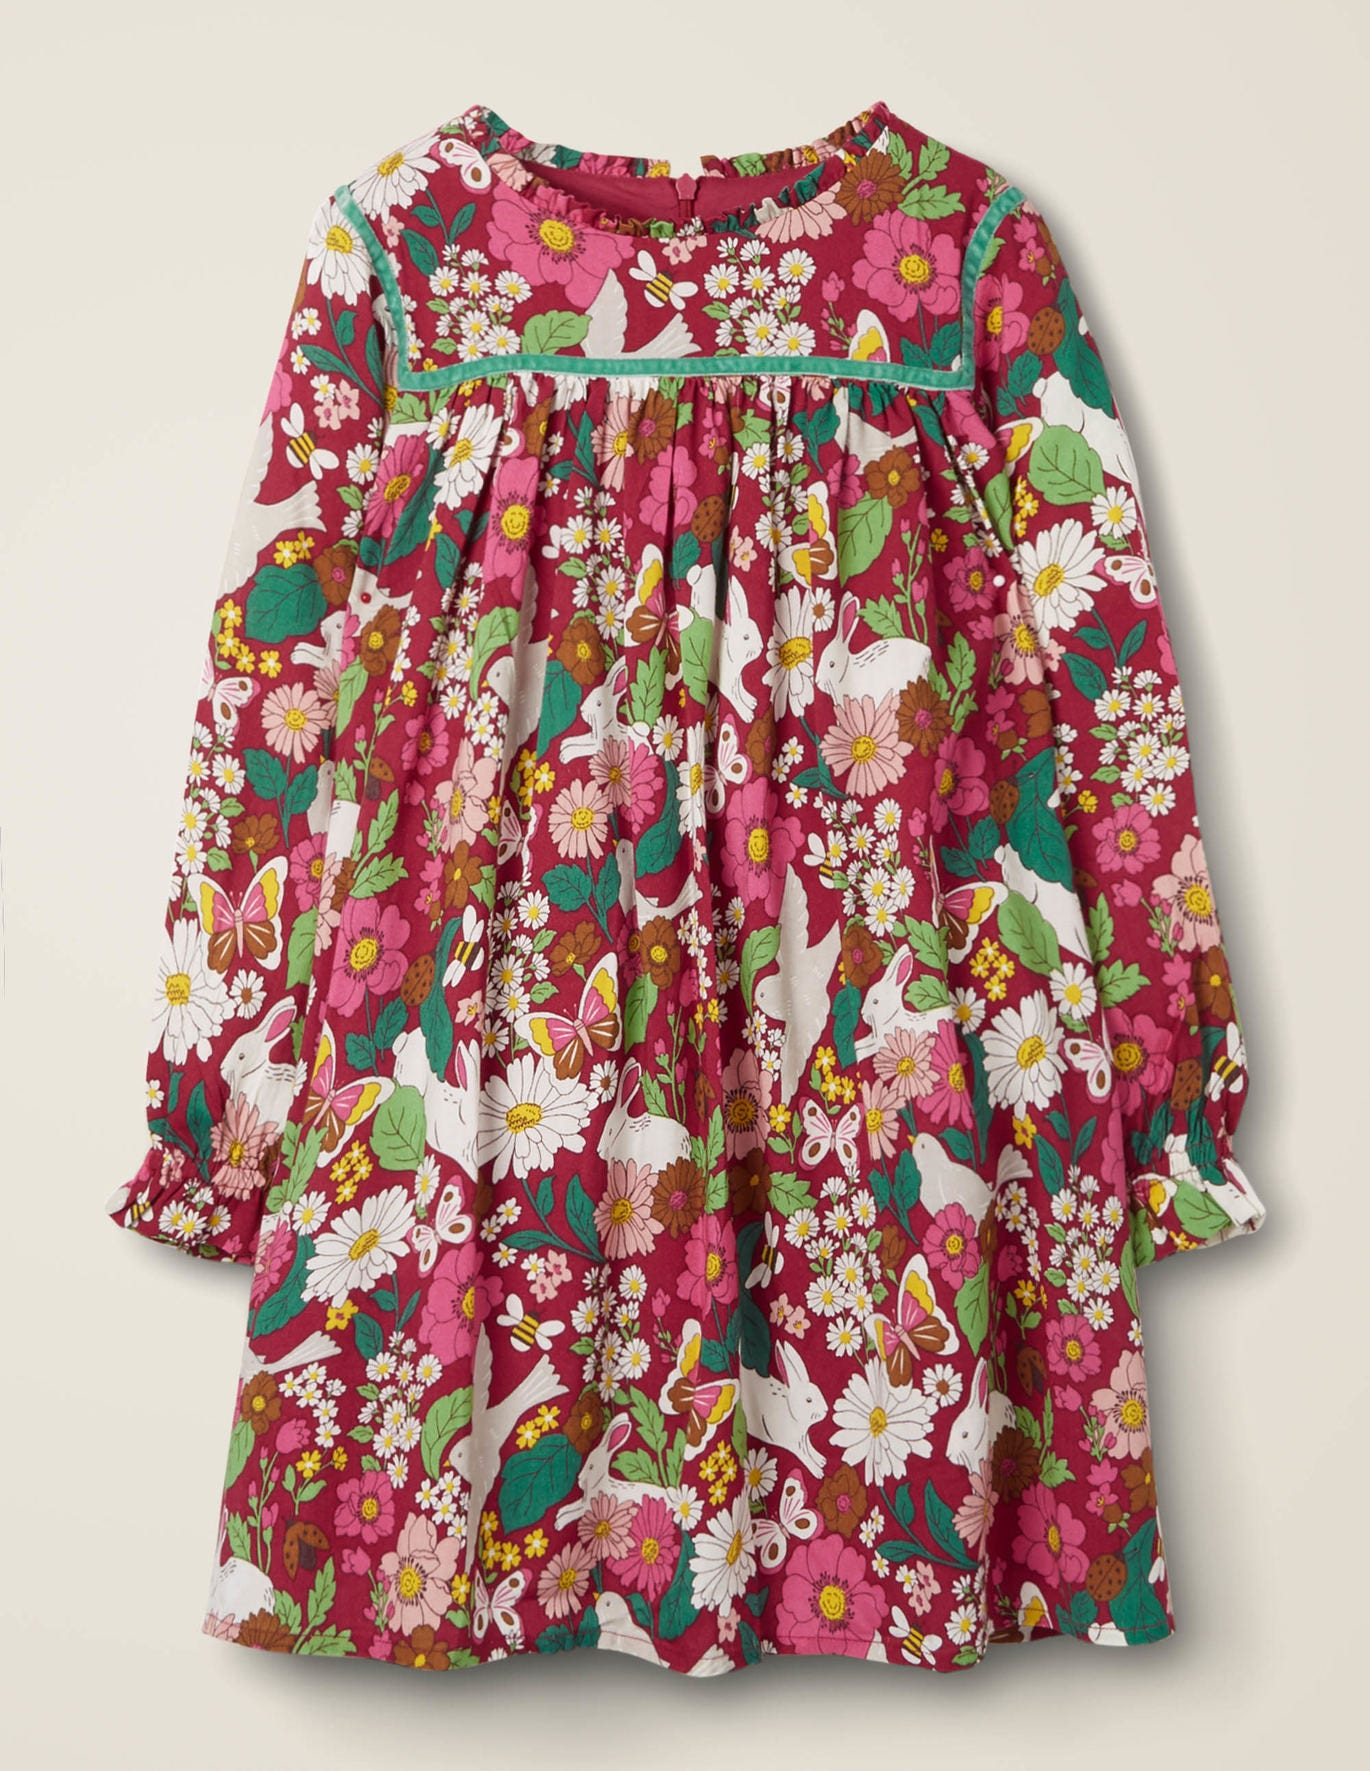 Frill Neck Printed Dress by Boden